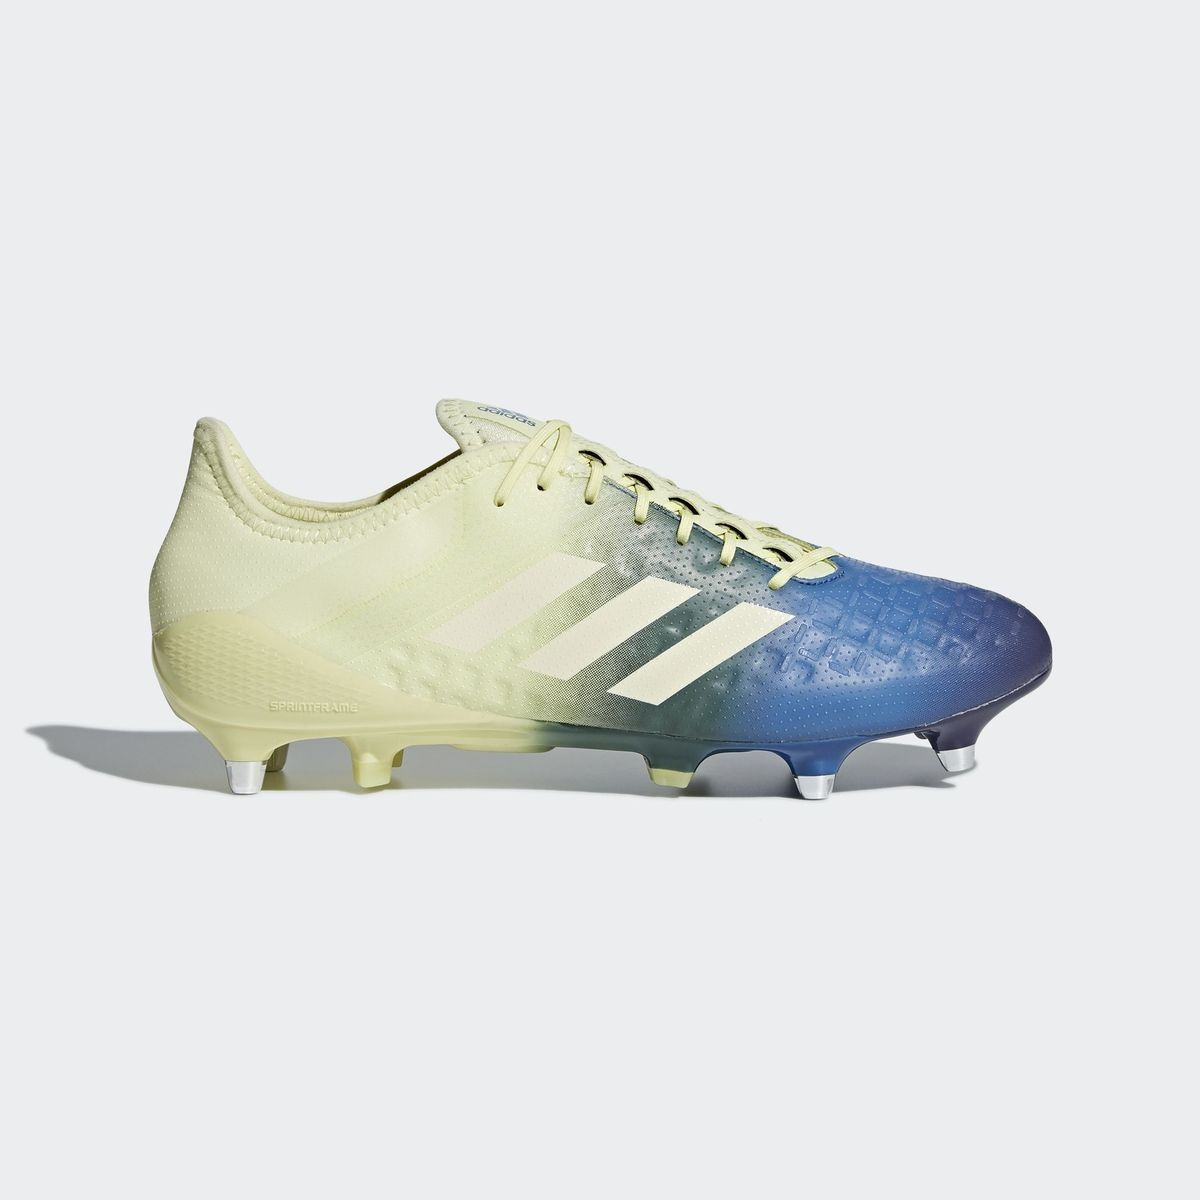 Chaussure En 2019Products Malice Predator Sg Control sxhrdQCt